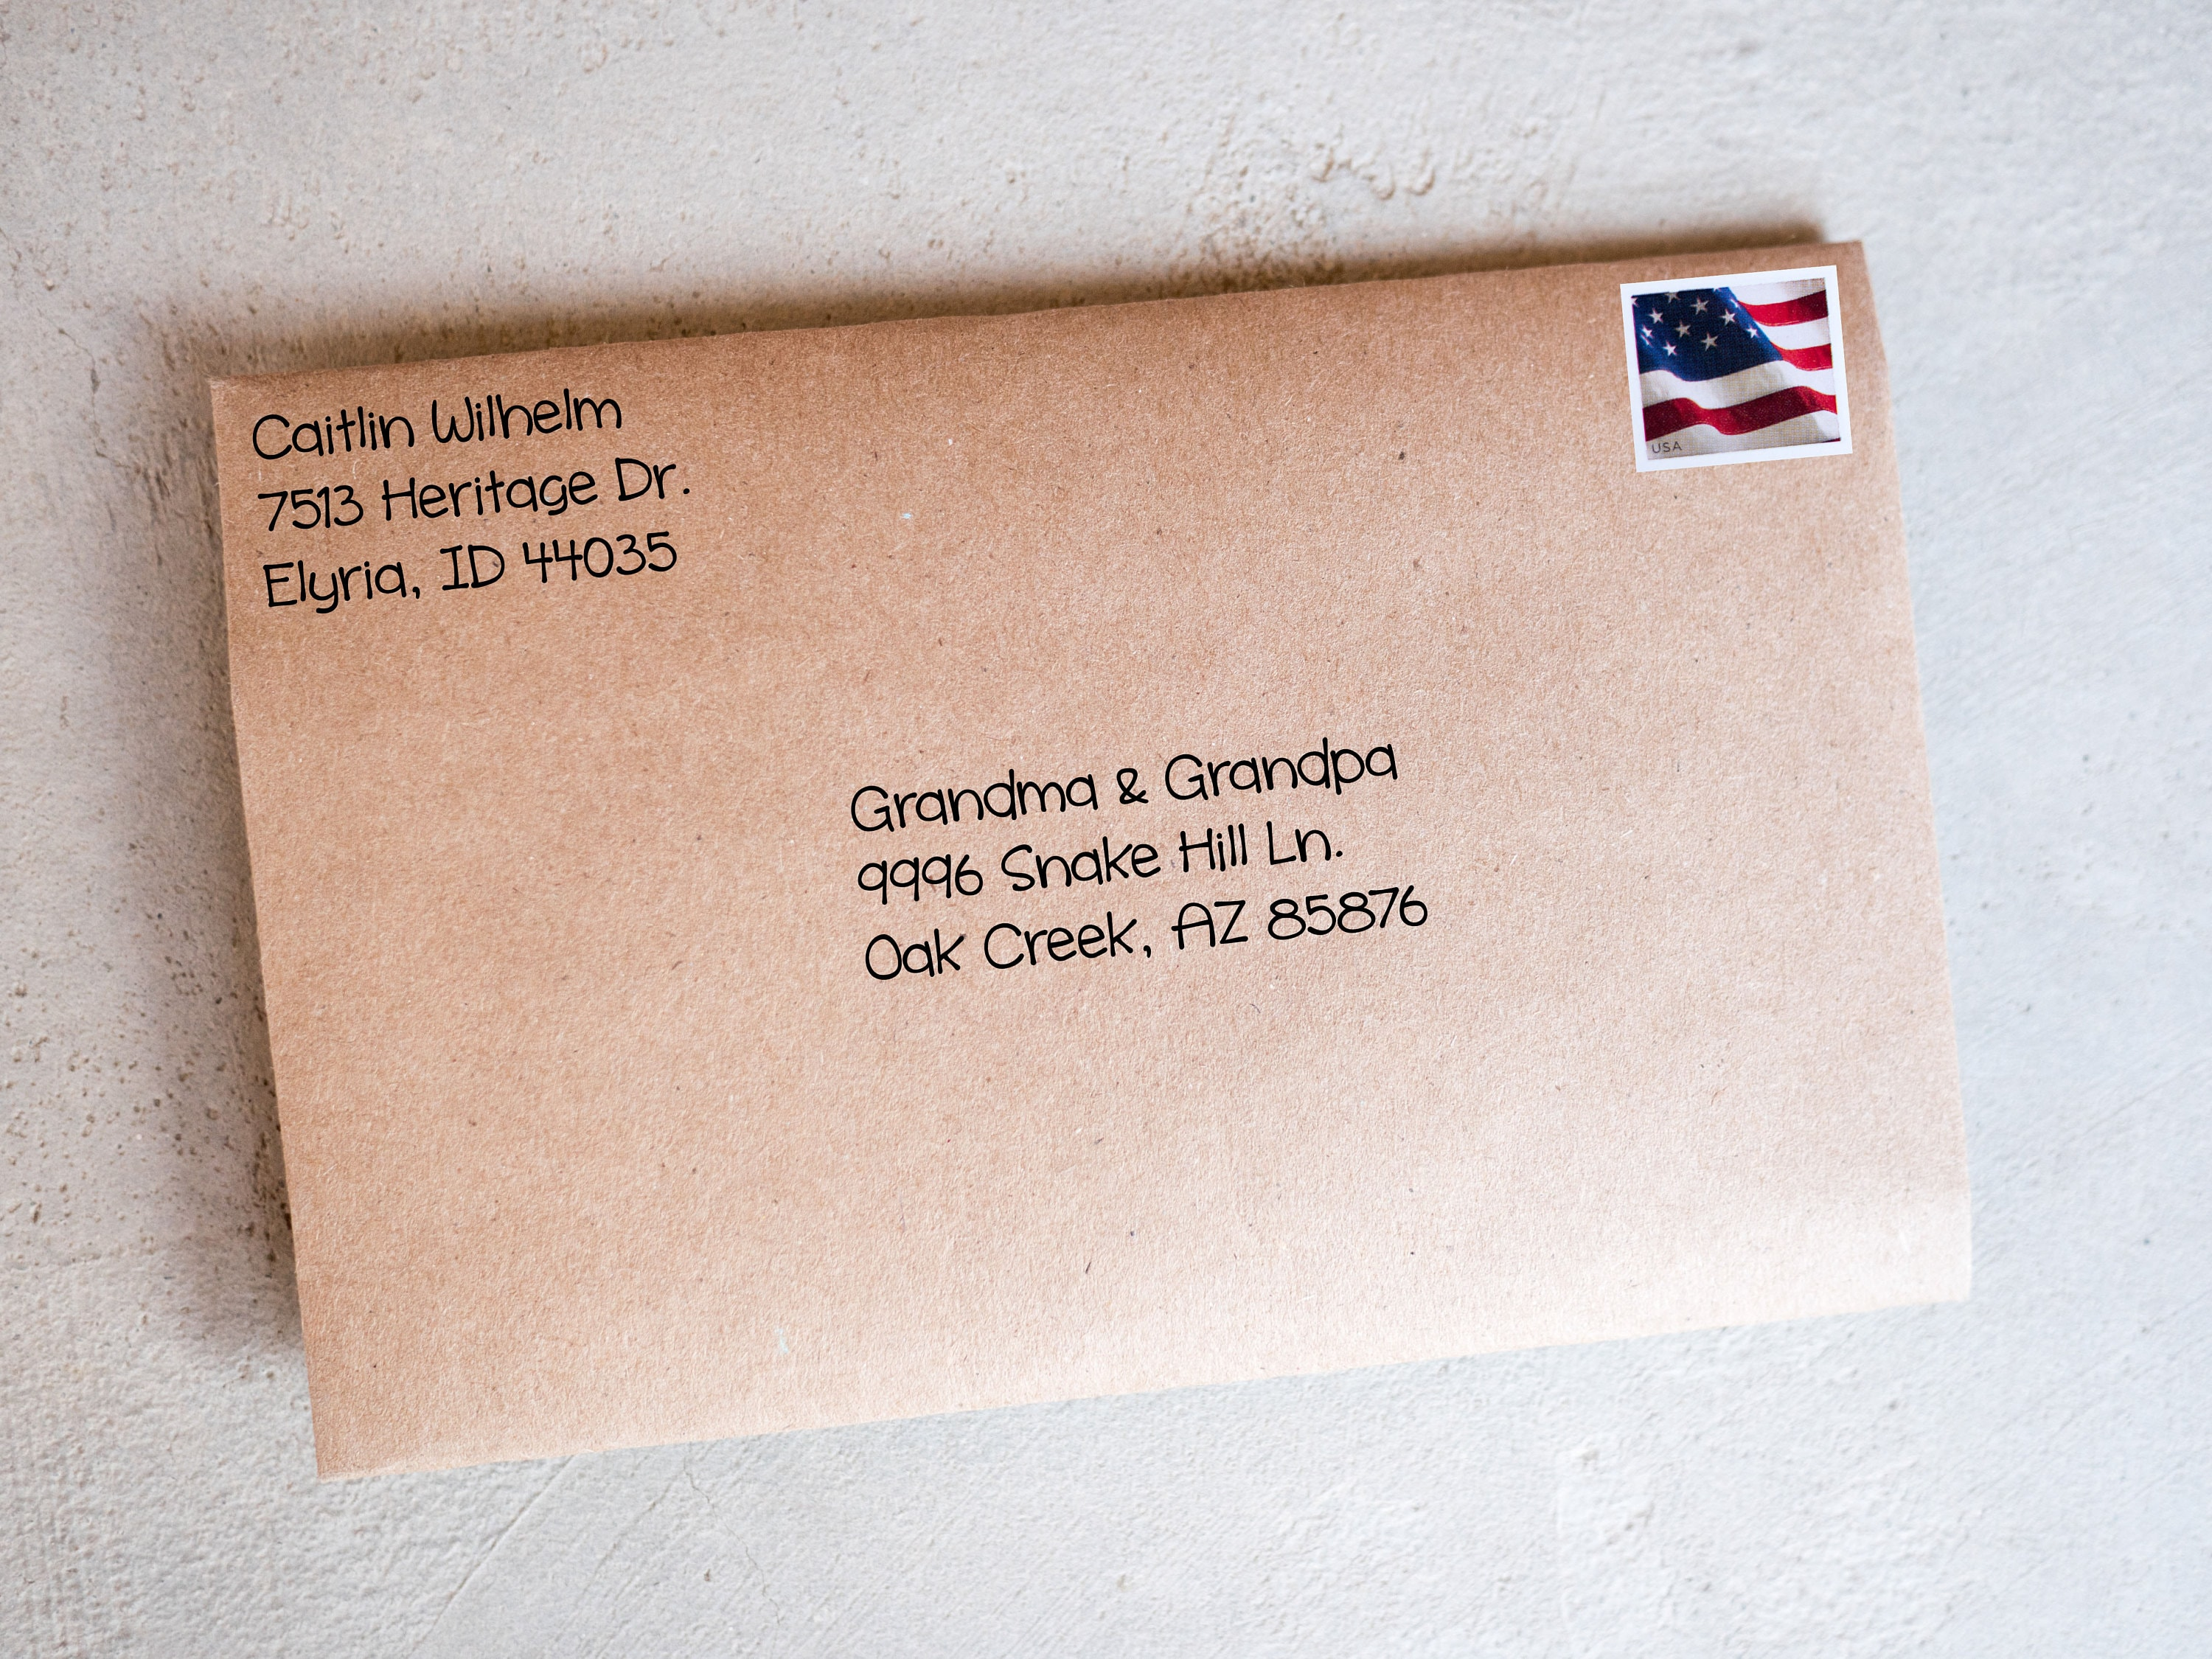 Address the envelope and apply postage